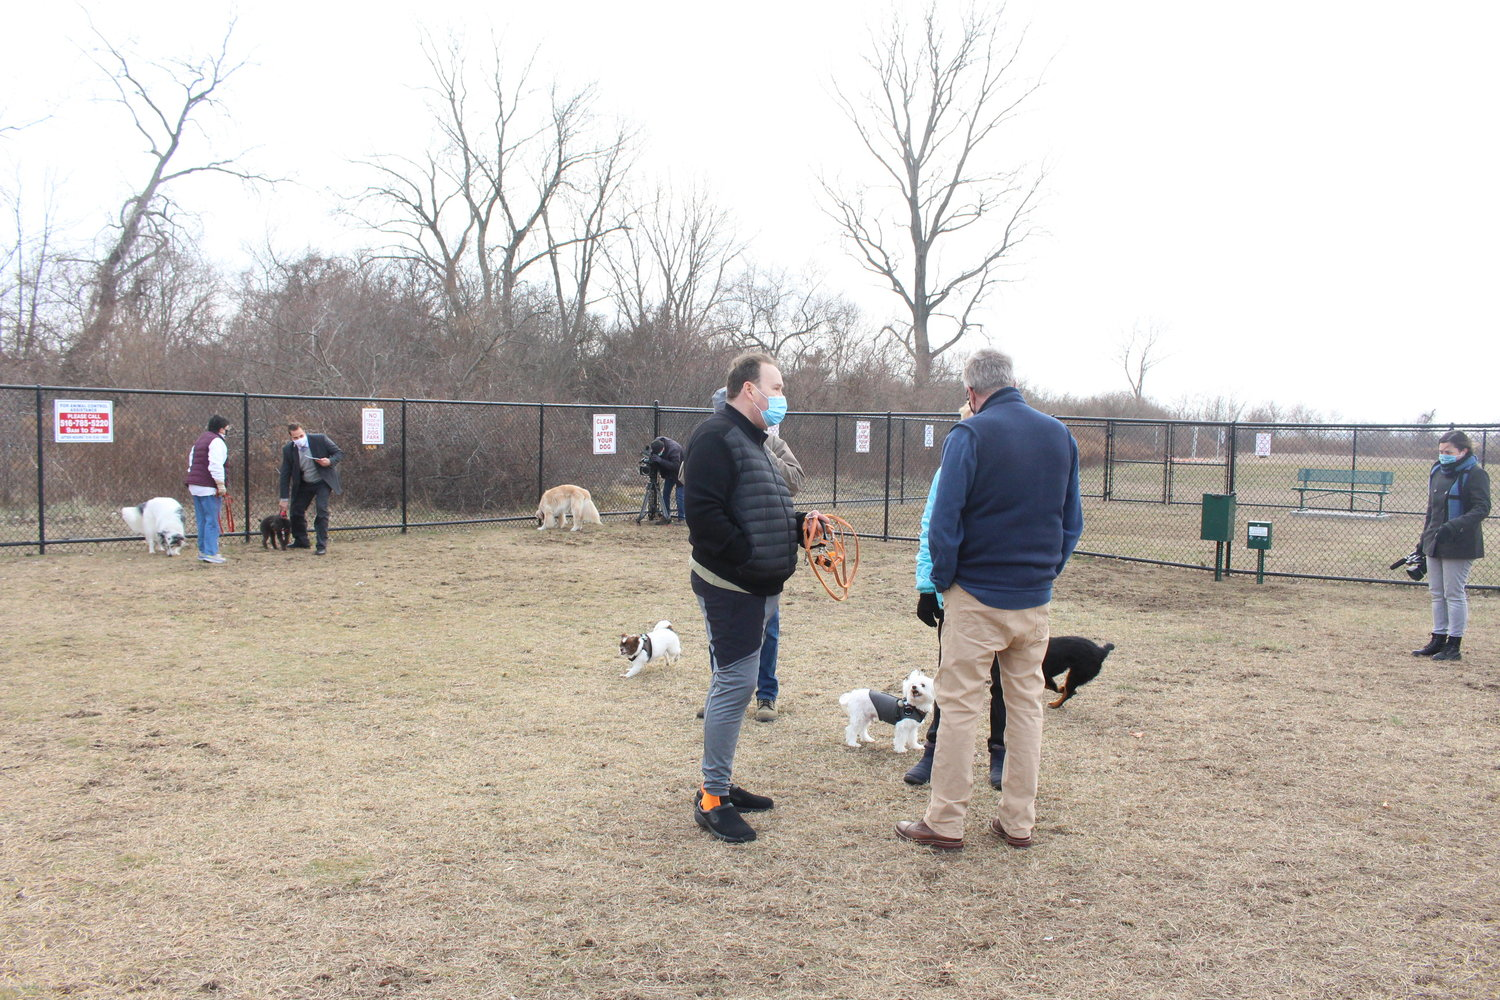 Bellmore resident Scott Gold, center, with his dogs, Morty and Bailey, mingled with Town Supervisor Don Clavin, right, and other dog owners.